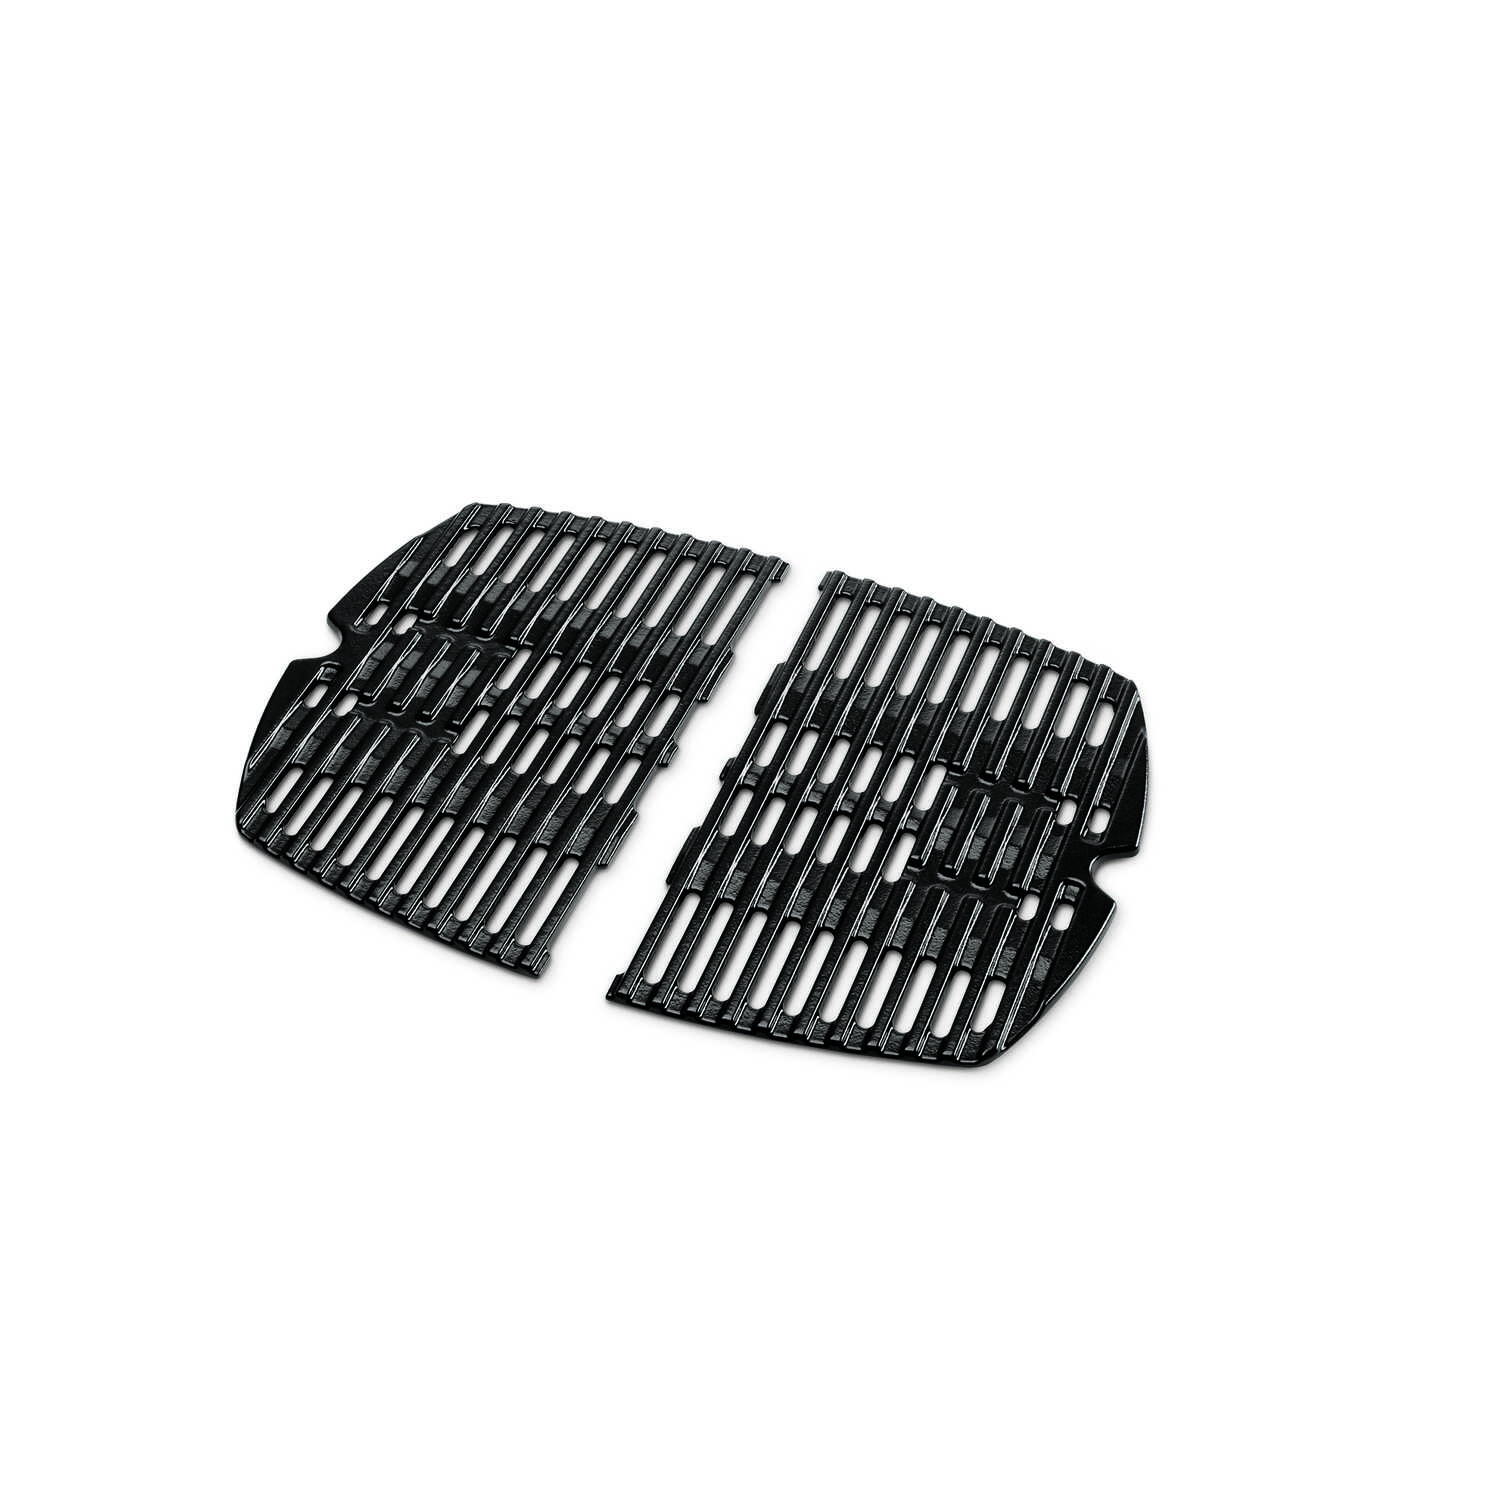 Weber  Q100/1000  Cast Iron/Porcelain  Grill Cooking Grate  17 in. L x 12-3/4 in. W